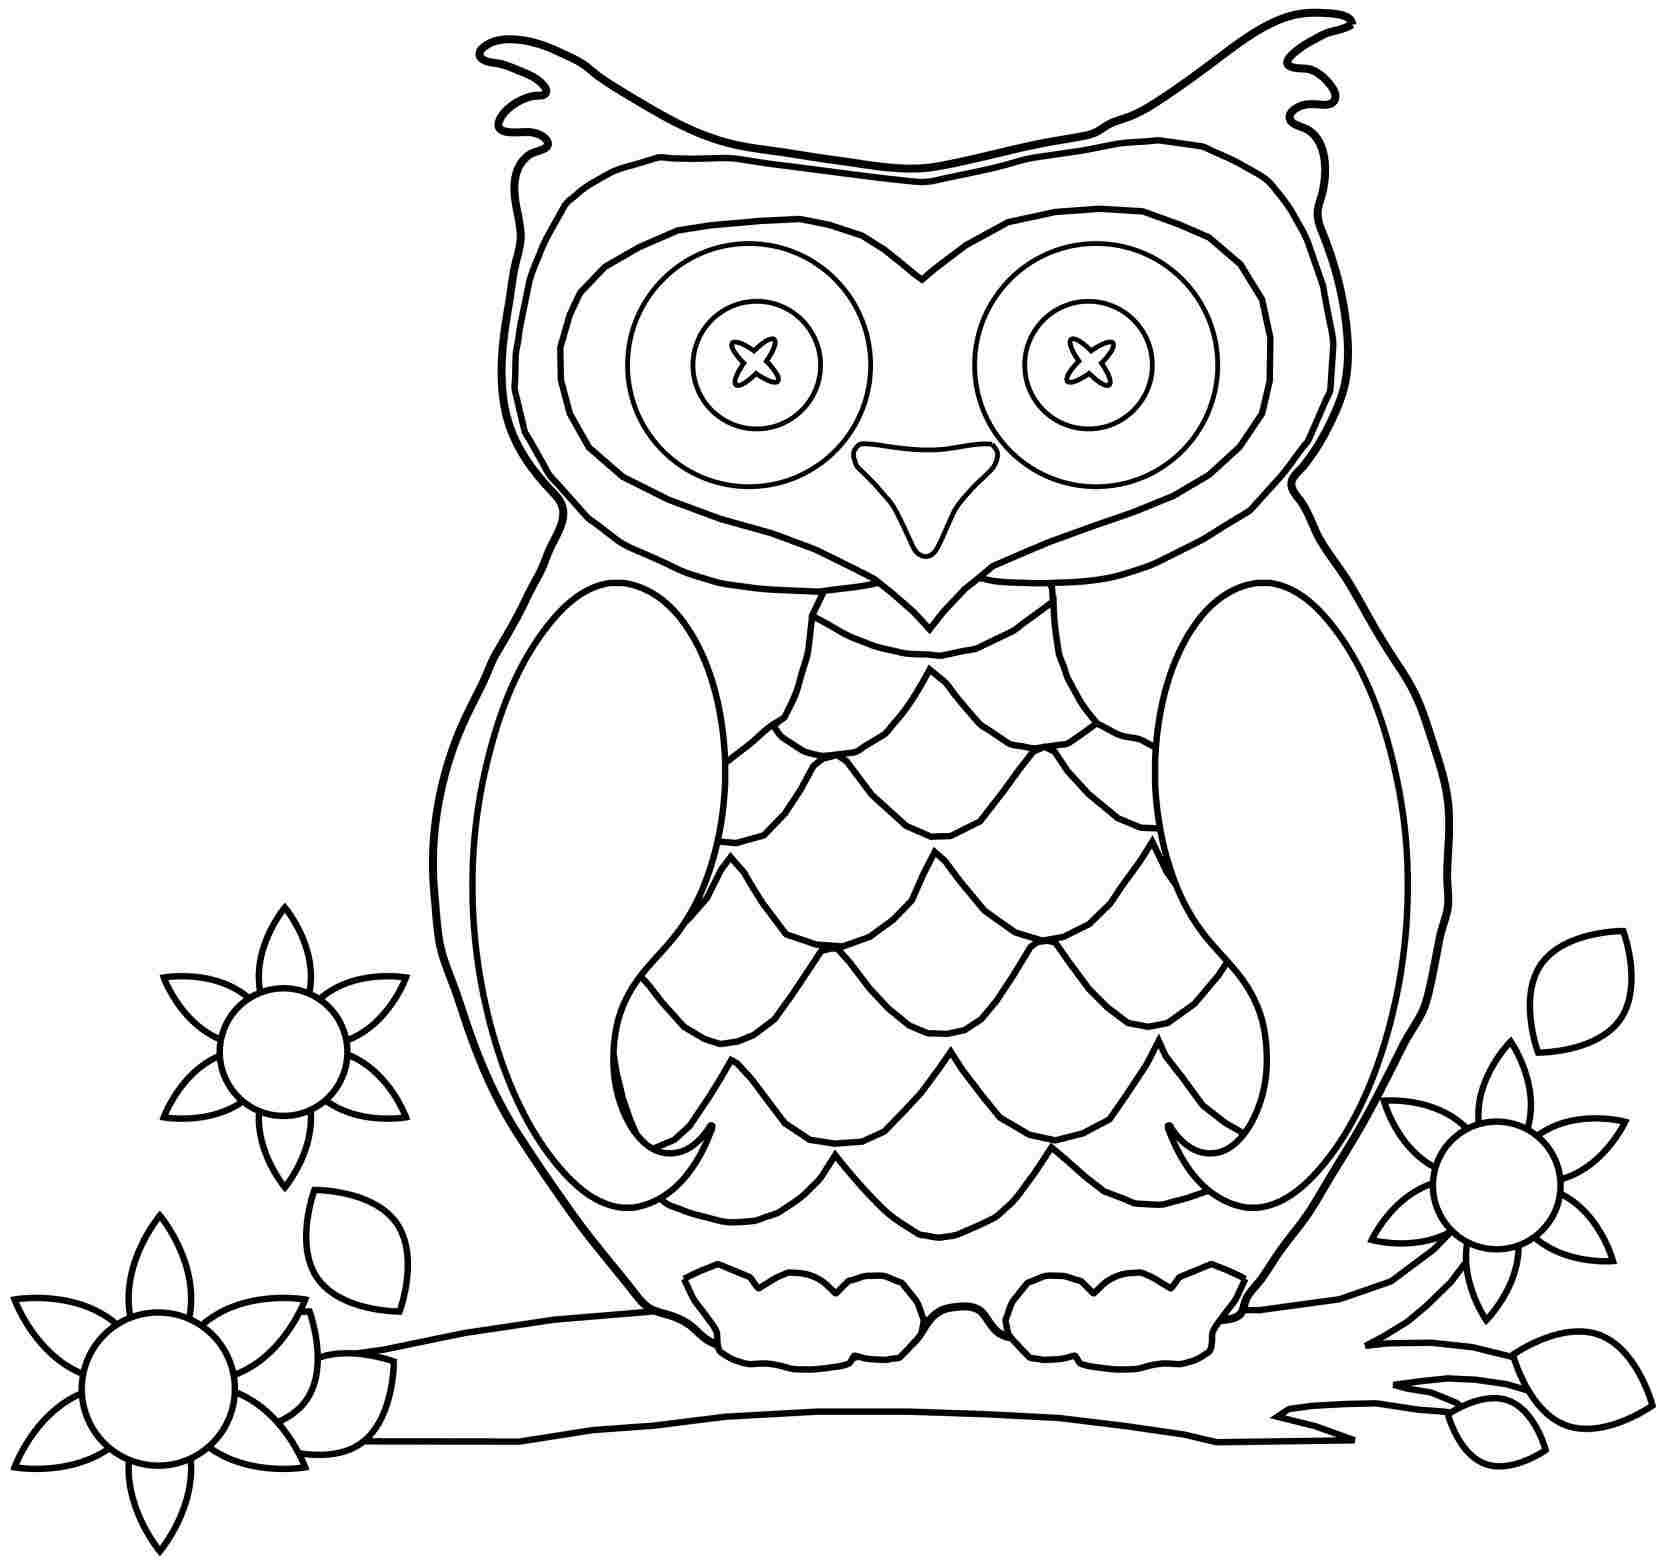 Printable Owl Picture Owl Printable Coloring Pages Mon Core